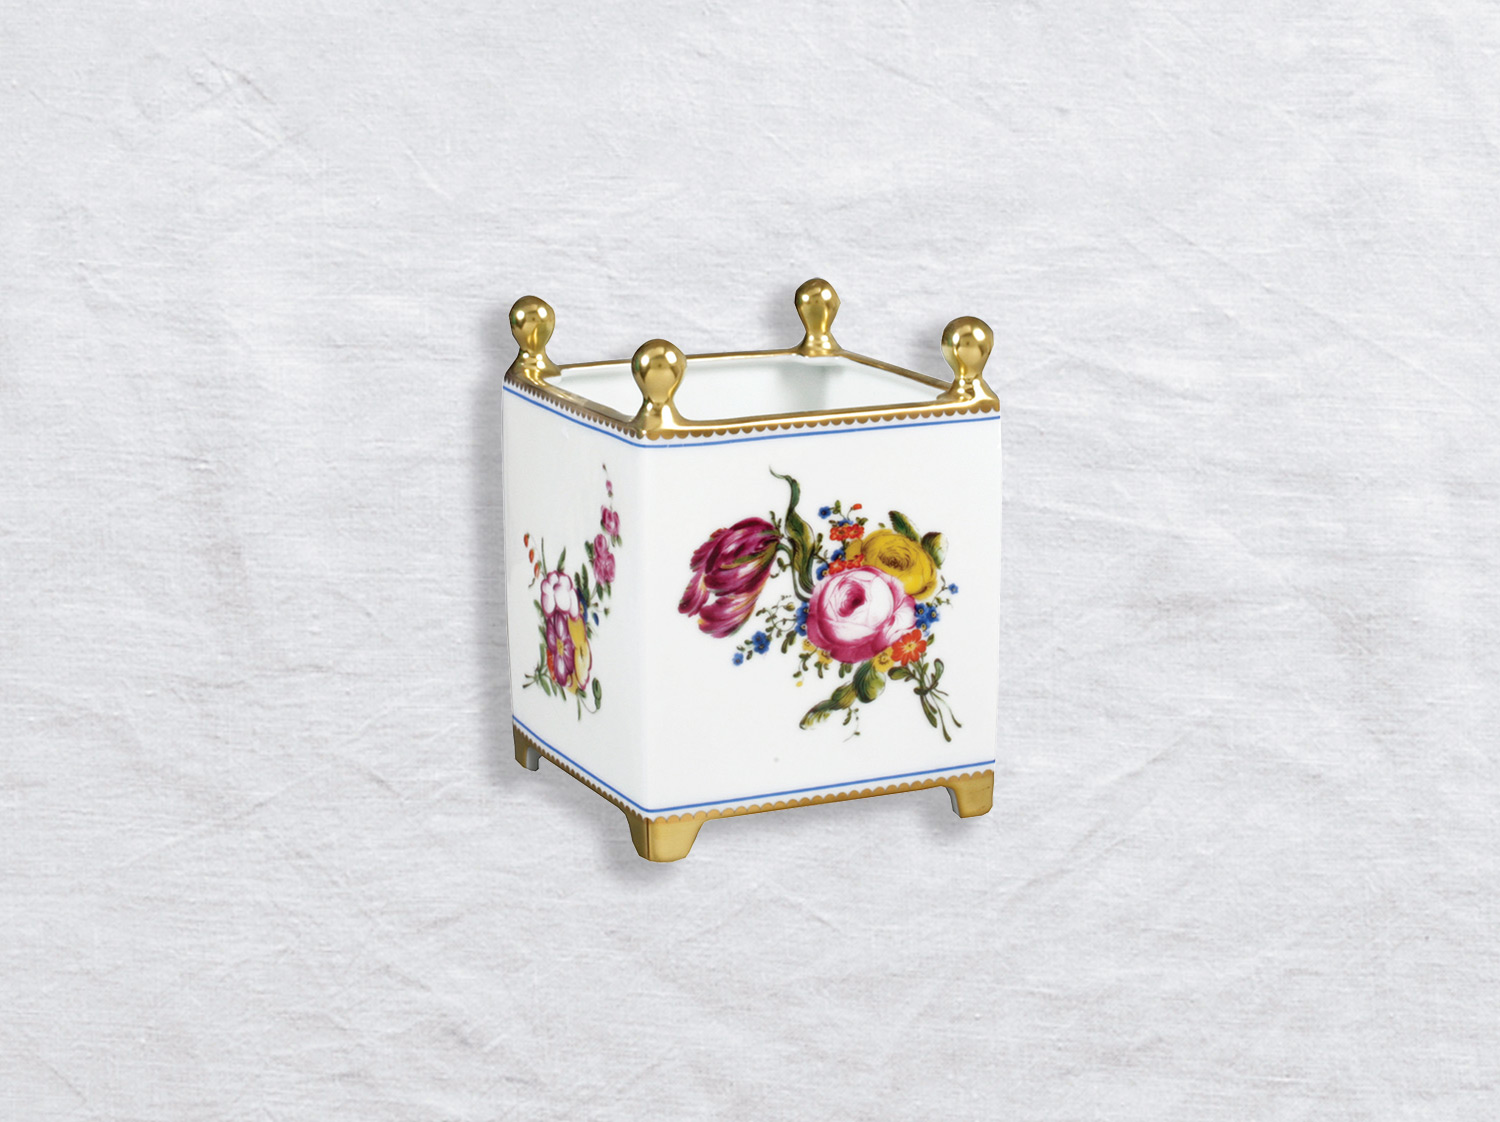 Caisse à fleurs en porcelaine de la collection A la reine Bernardaud